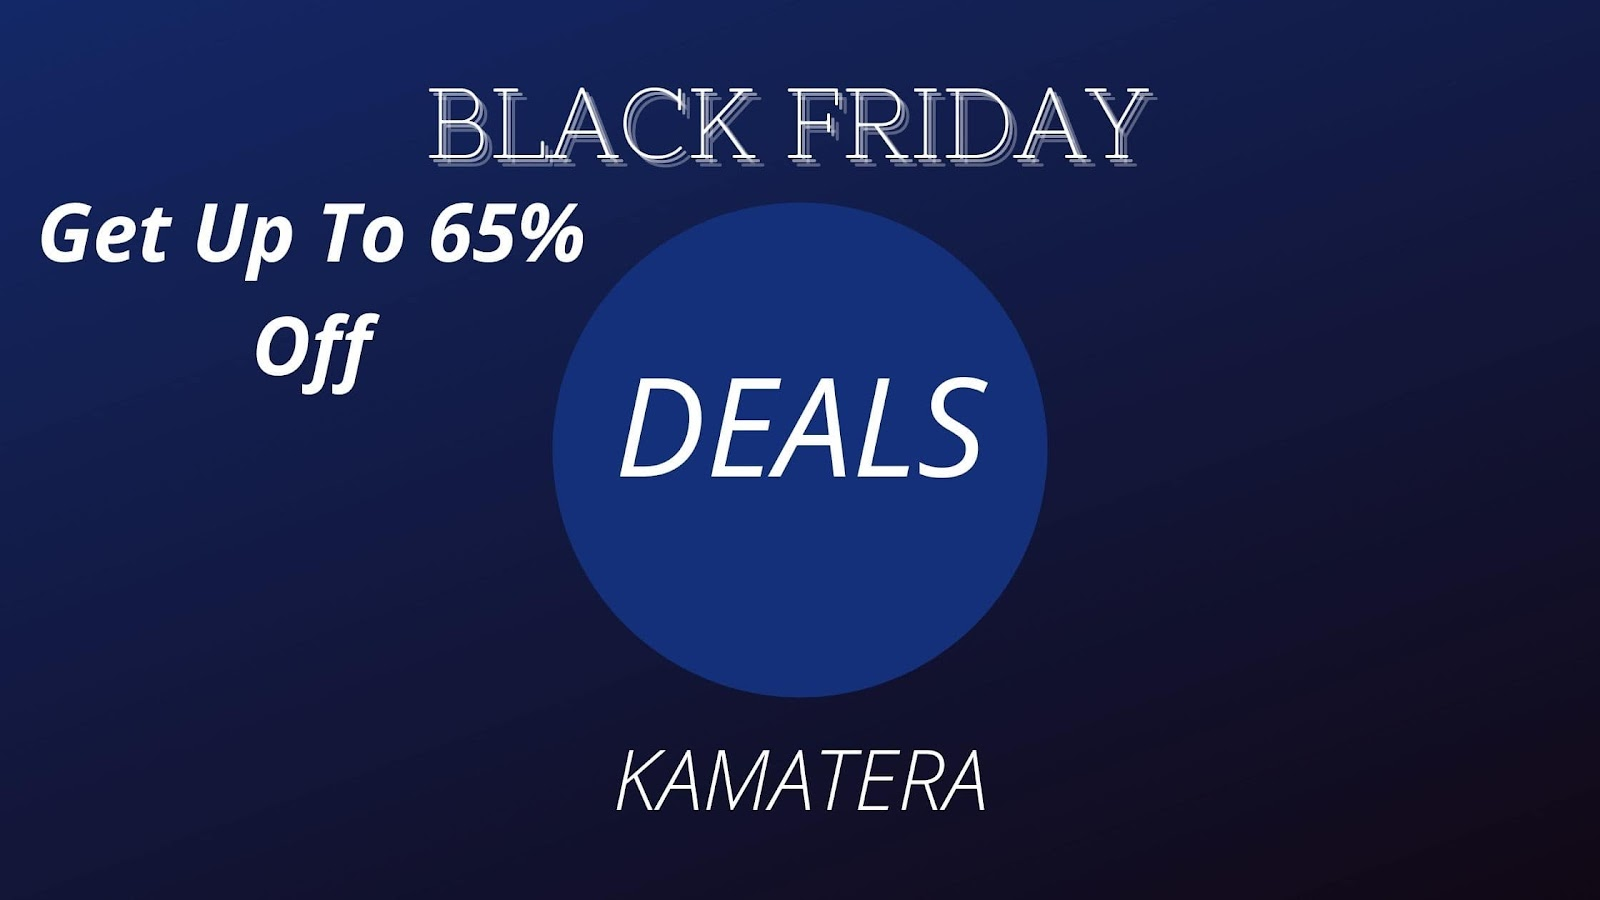 KAMATERA - Get Up To 65% Off